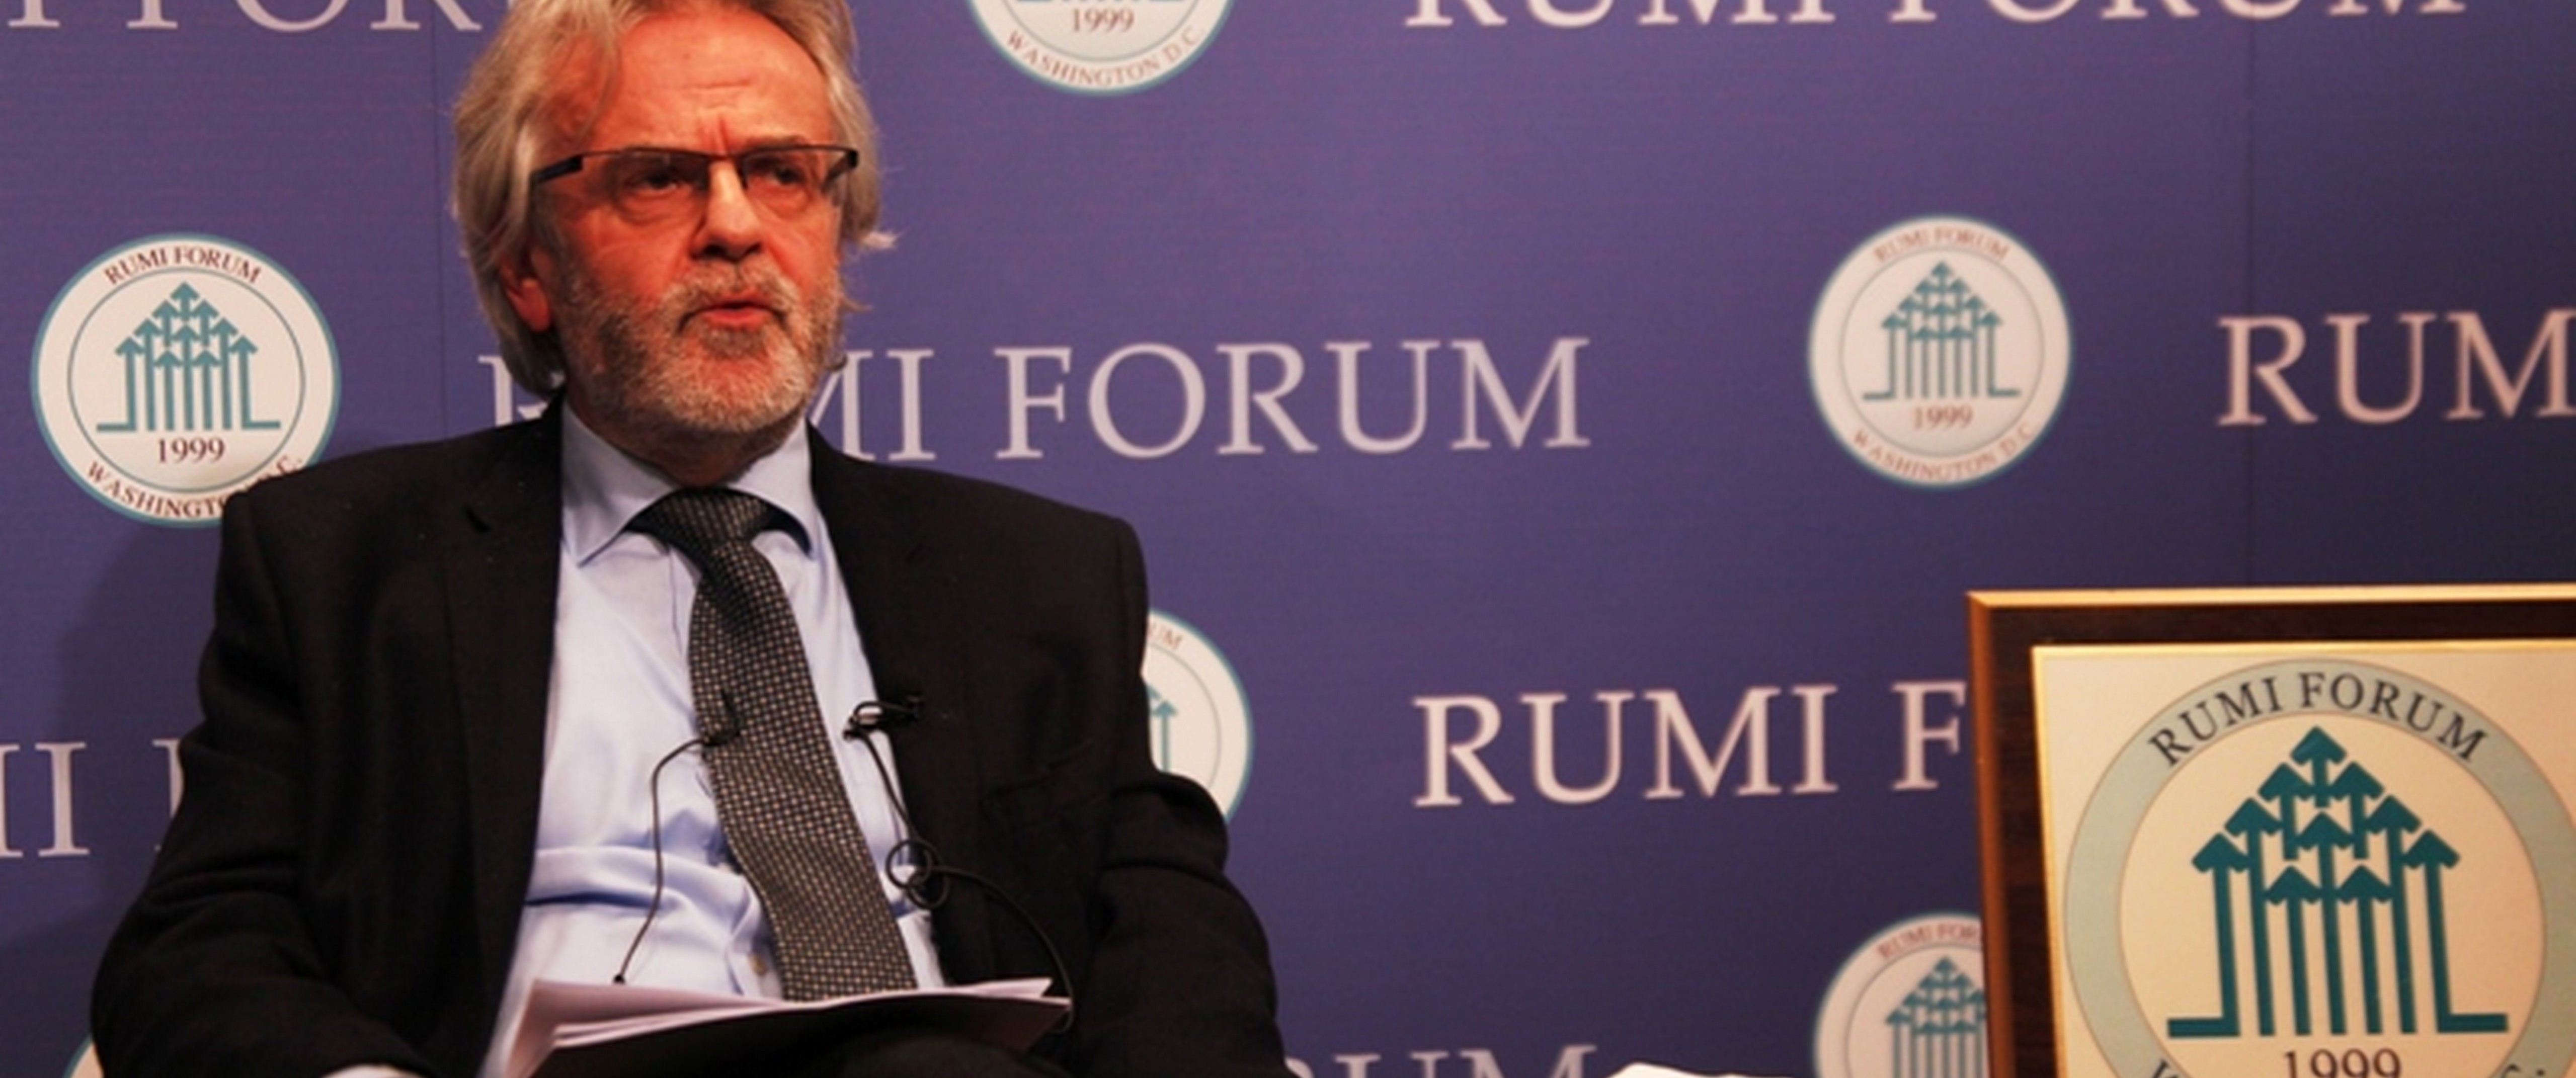 "Rainer Hermann presented his recent book ""Where is Turkey Headed?: Culture Battles in Turkey"" at the Rumi Forum. Turkey's domestic politics and foreign policy was covered during his talk."